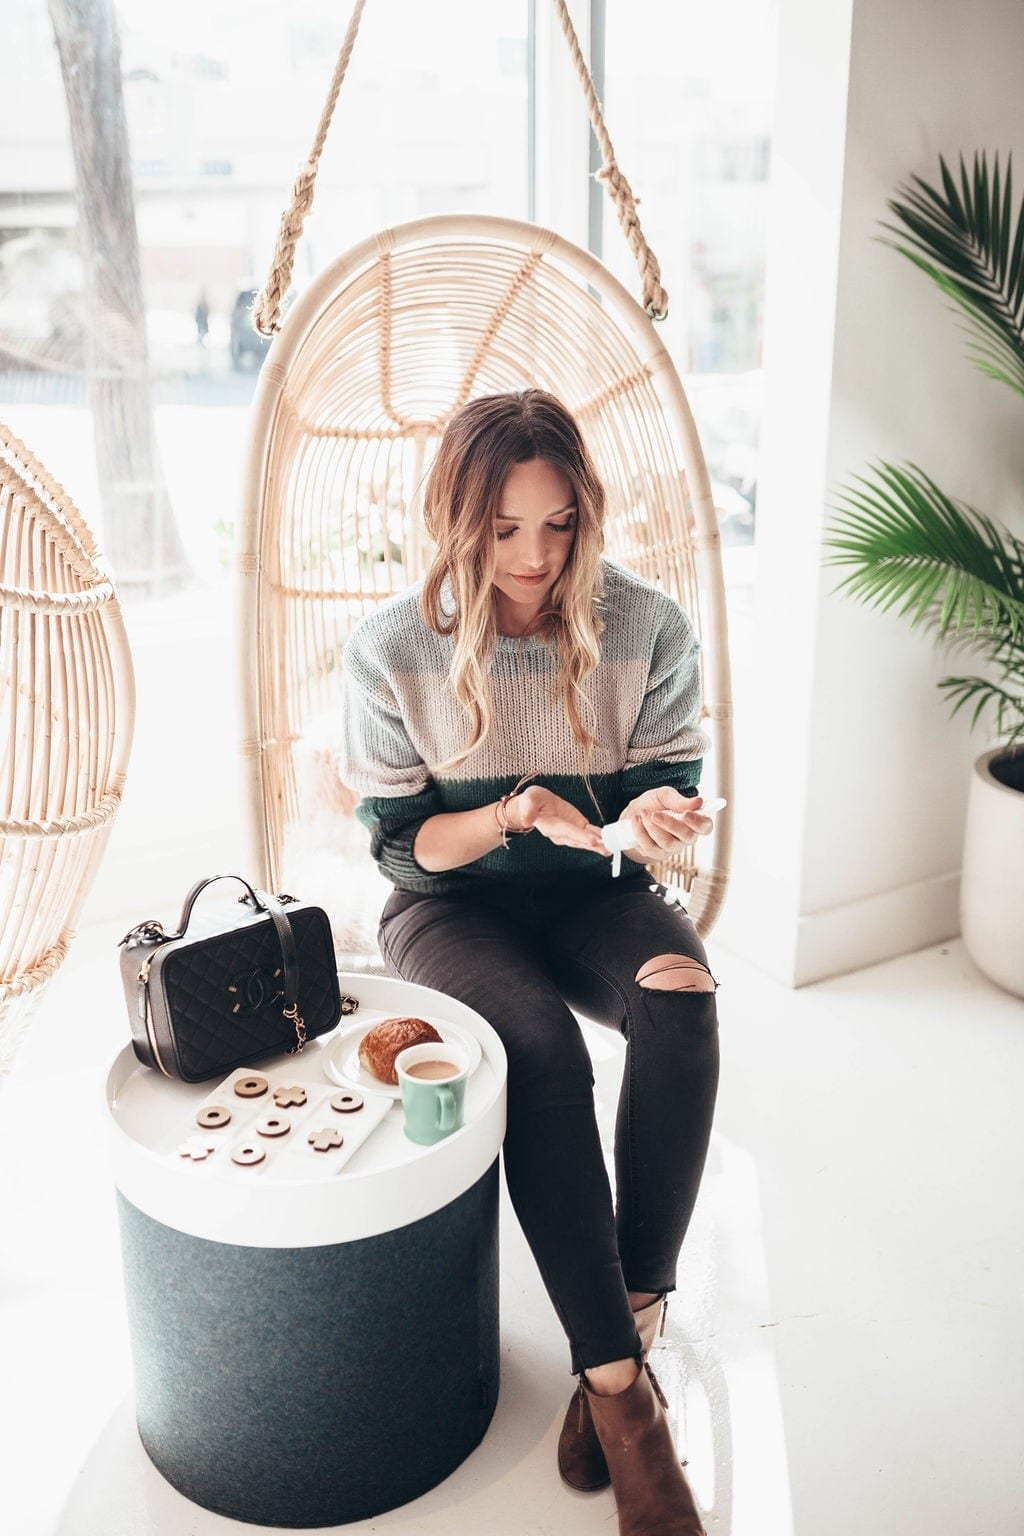 How to Heal Dry Hands by popular San Francisco lifestyle blog, Just Add Glam: image of a woman sitting in a hanging rattan chair and applying lotion to her hands.